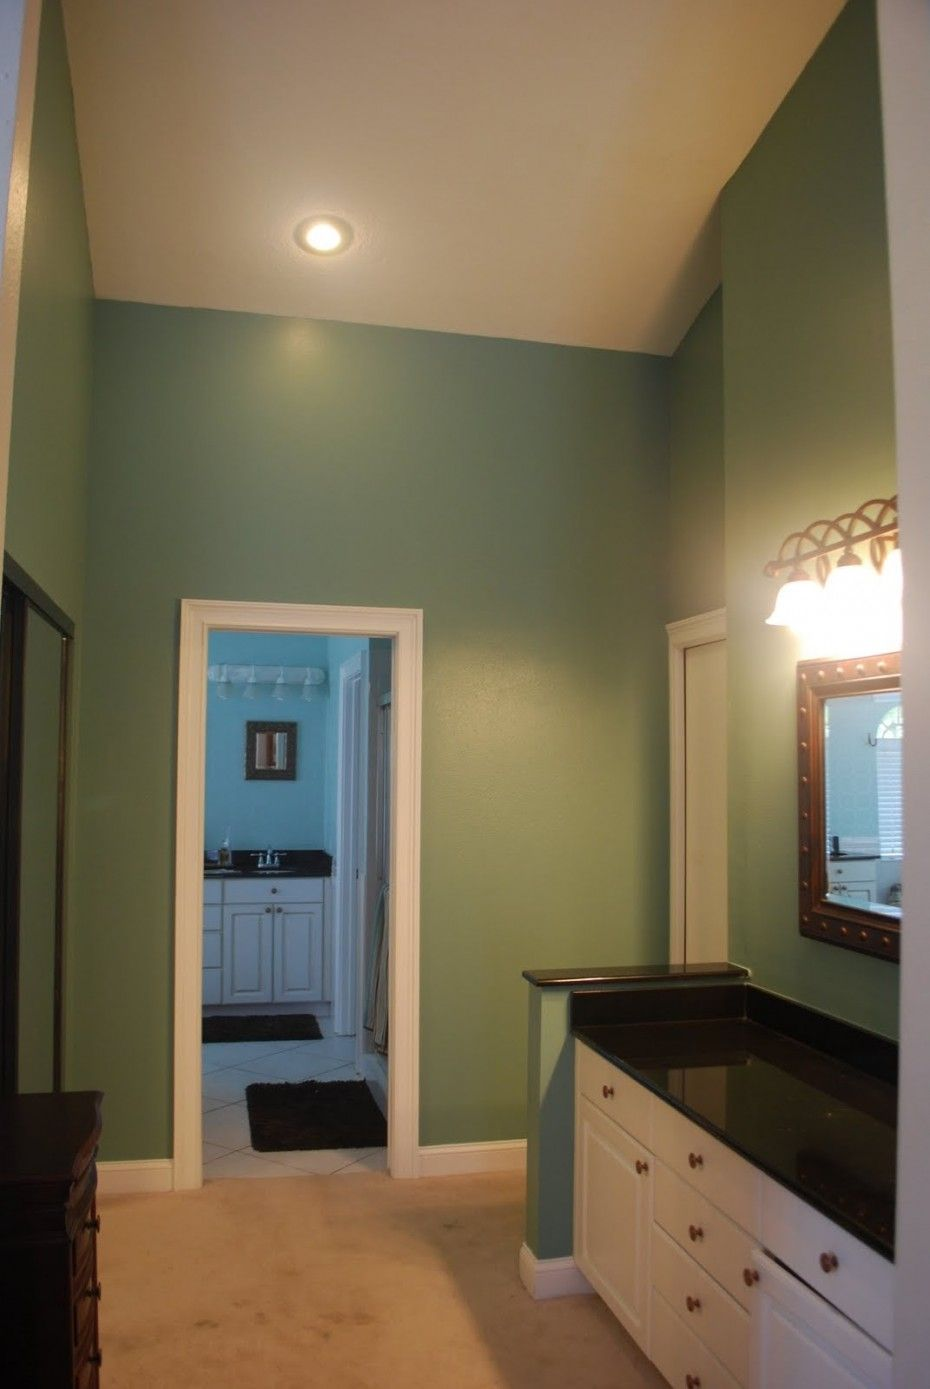 Paint colors for small bathrooms - Bathroom Paint Colors Ideas Warm Green Bathroom Painting